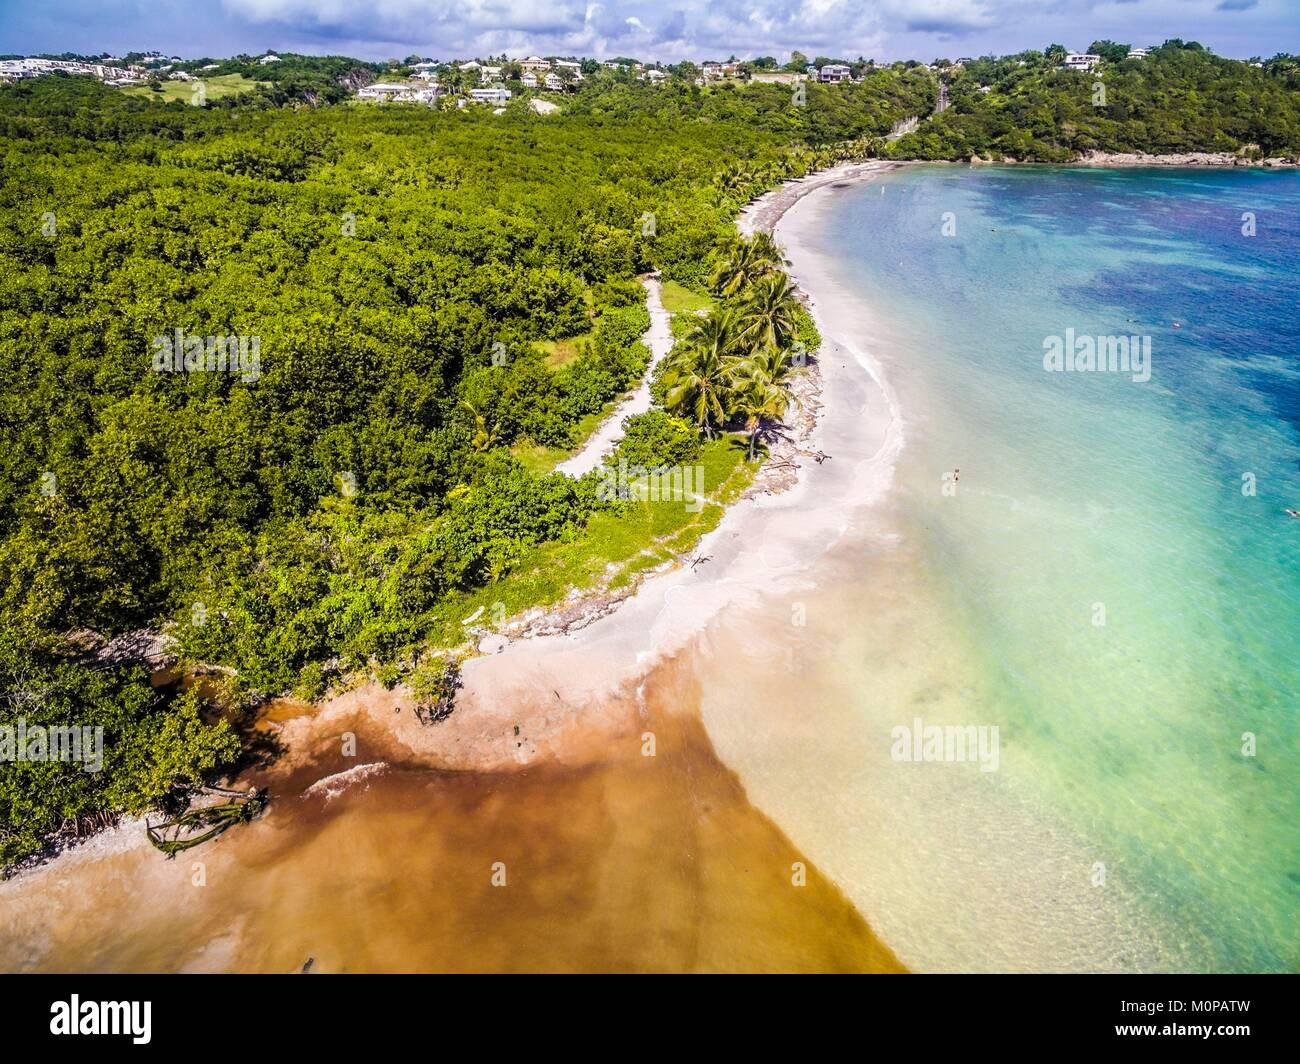 France,Caribbean,Lesser Antilles,Guadeloupe,Grande-Terre,Le Gosier,aerial view of the Salines beach,mangrove in - Stock Image